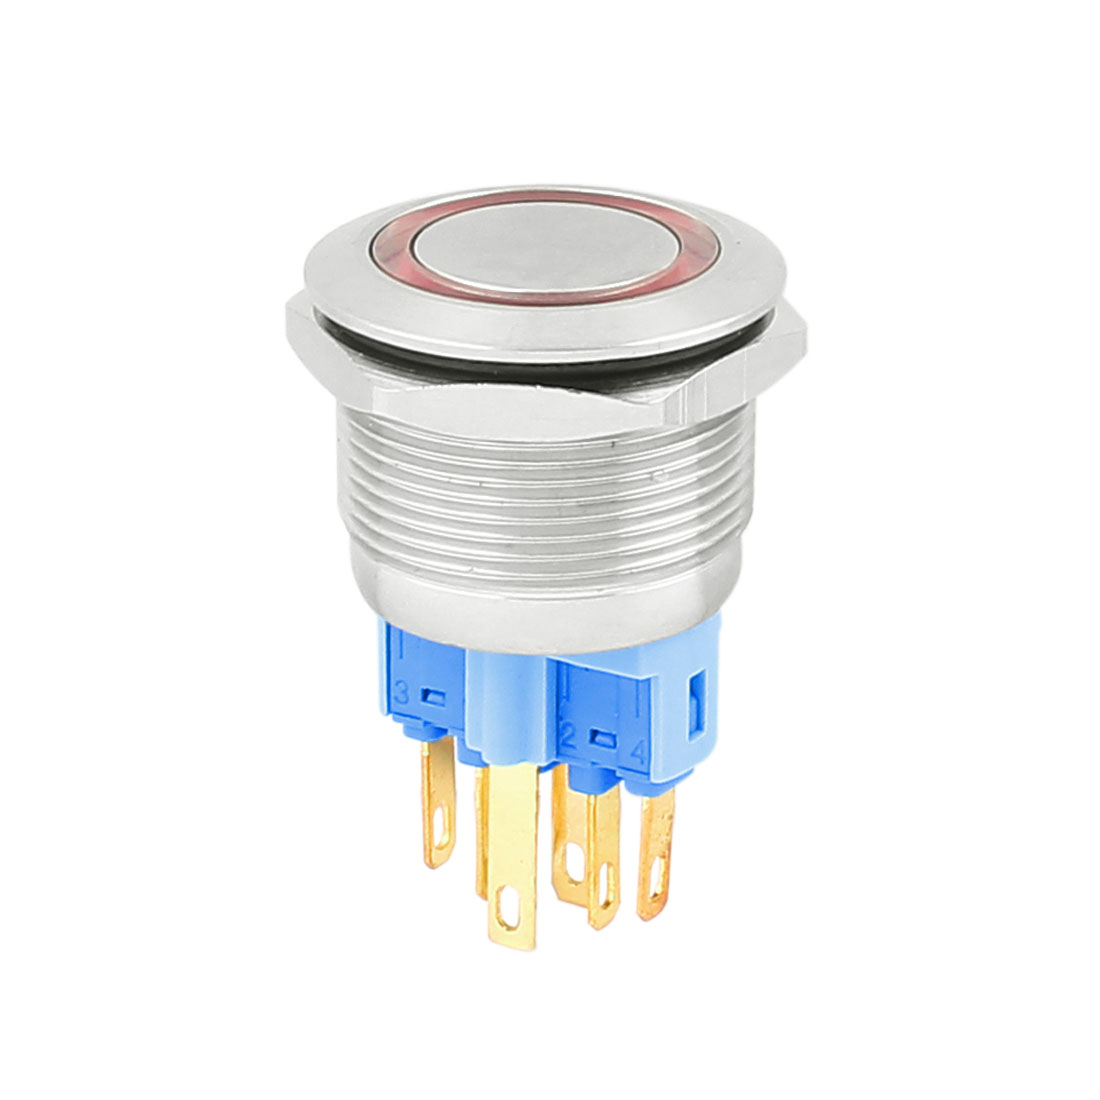 12V 22mm Dia Thread Red LED Angle Eyes Momentary Metal Pushbutton Switch